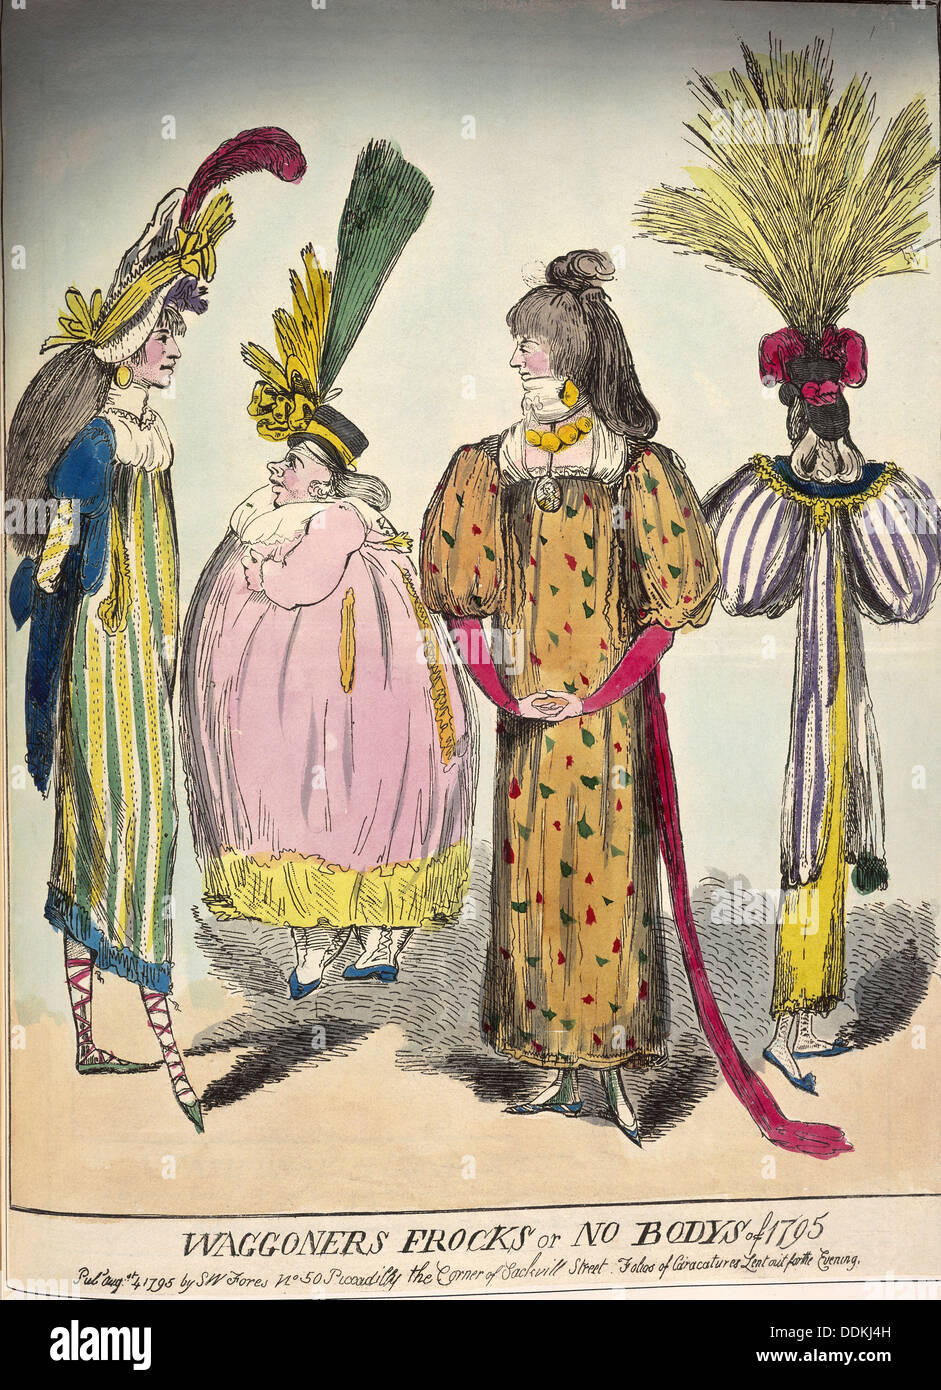 A caricature of late 18th century fashion, 1795. - Stock Image